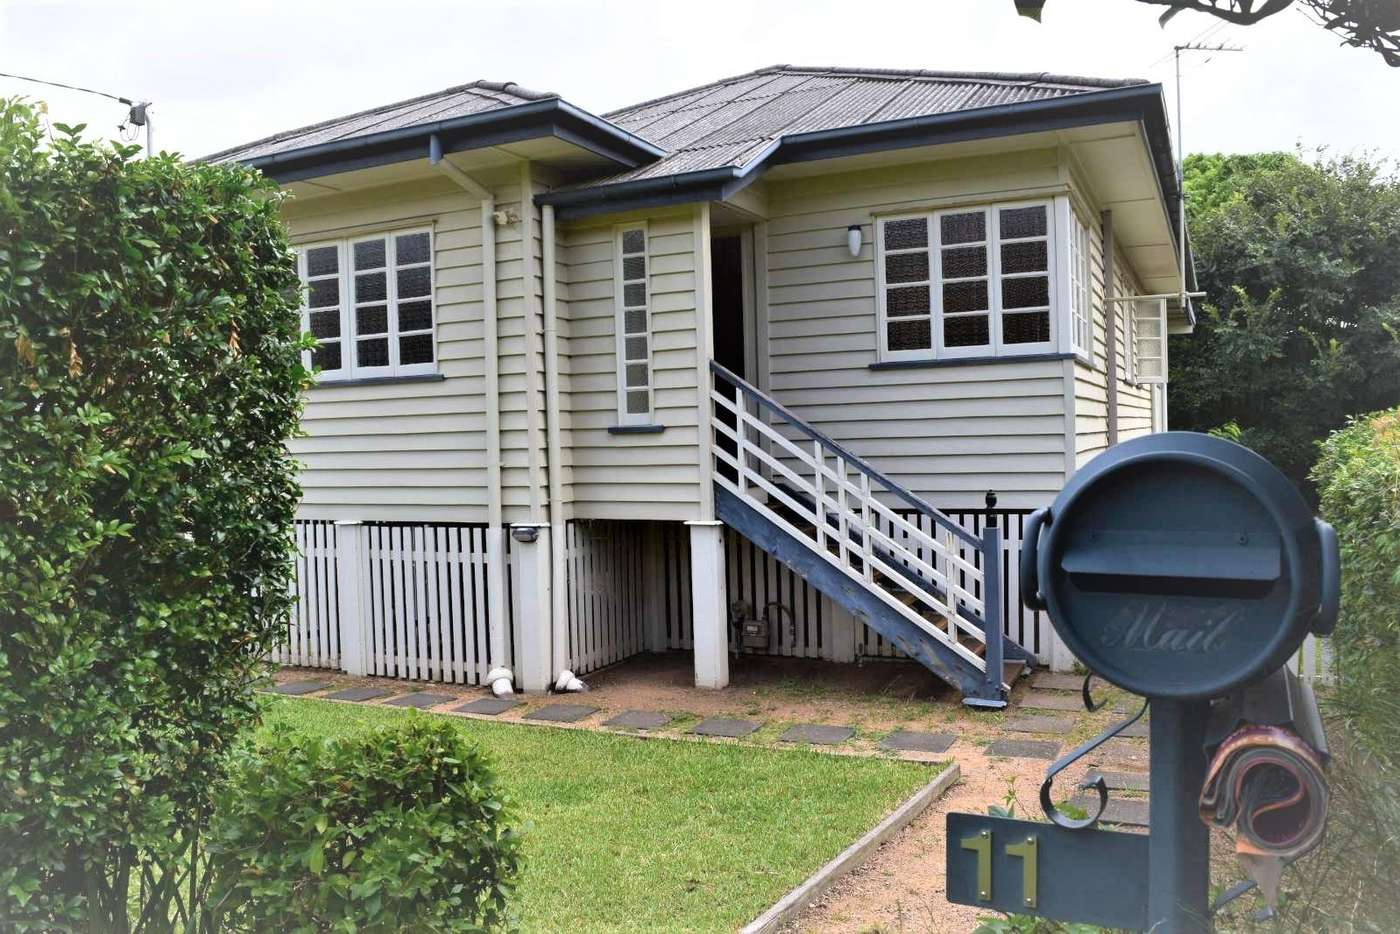 Main view of Homely house listing, 11 Avesnes Street, Holland Park QLD 4121